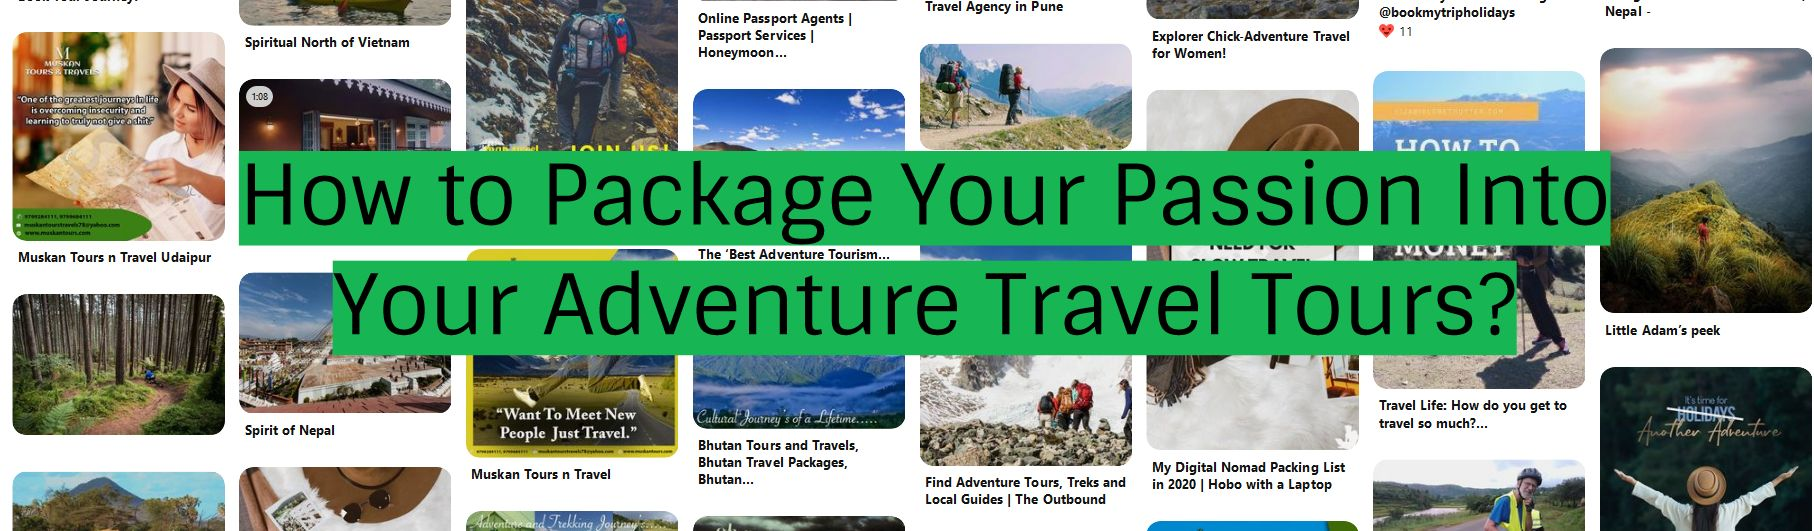 How to Package Your Passion Into Your Adventure Travel